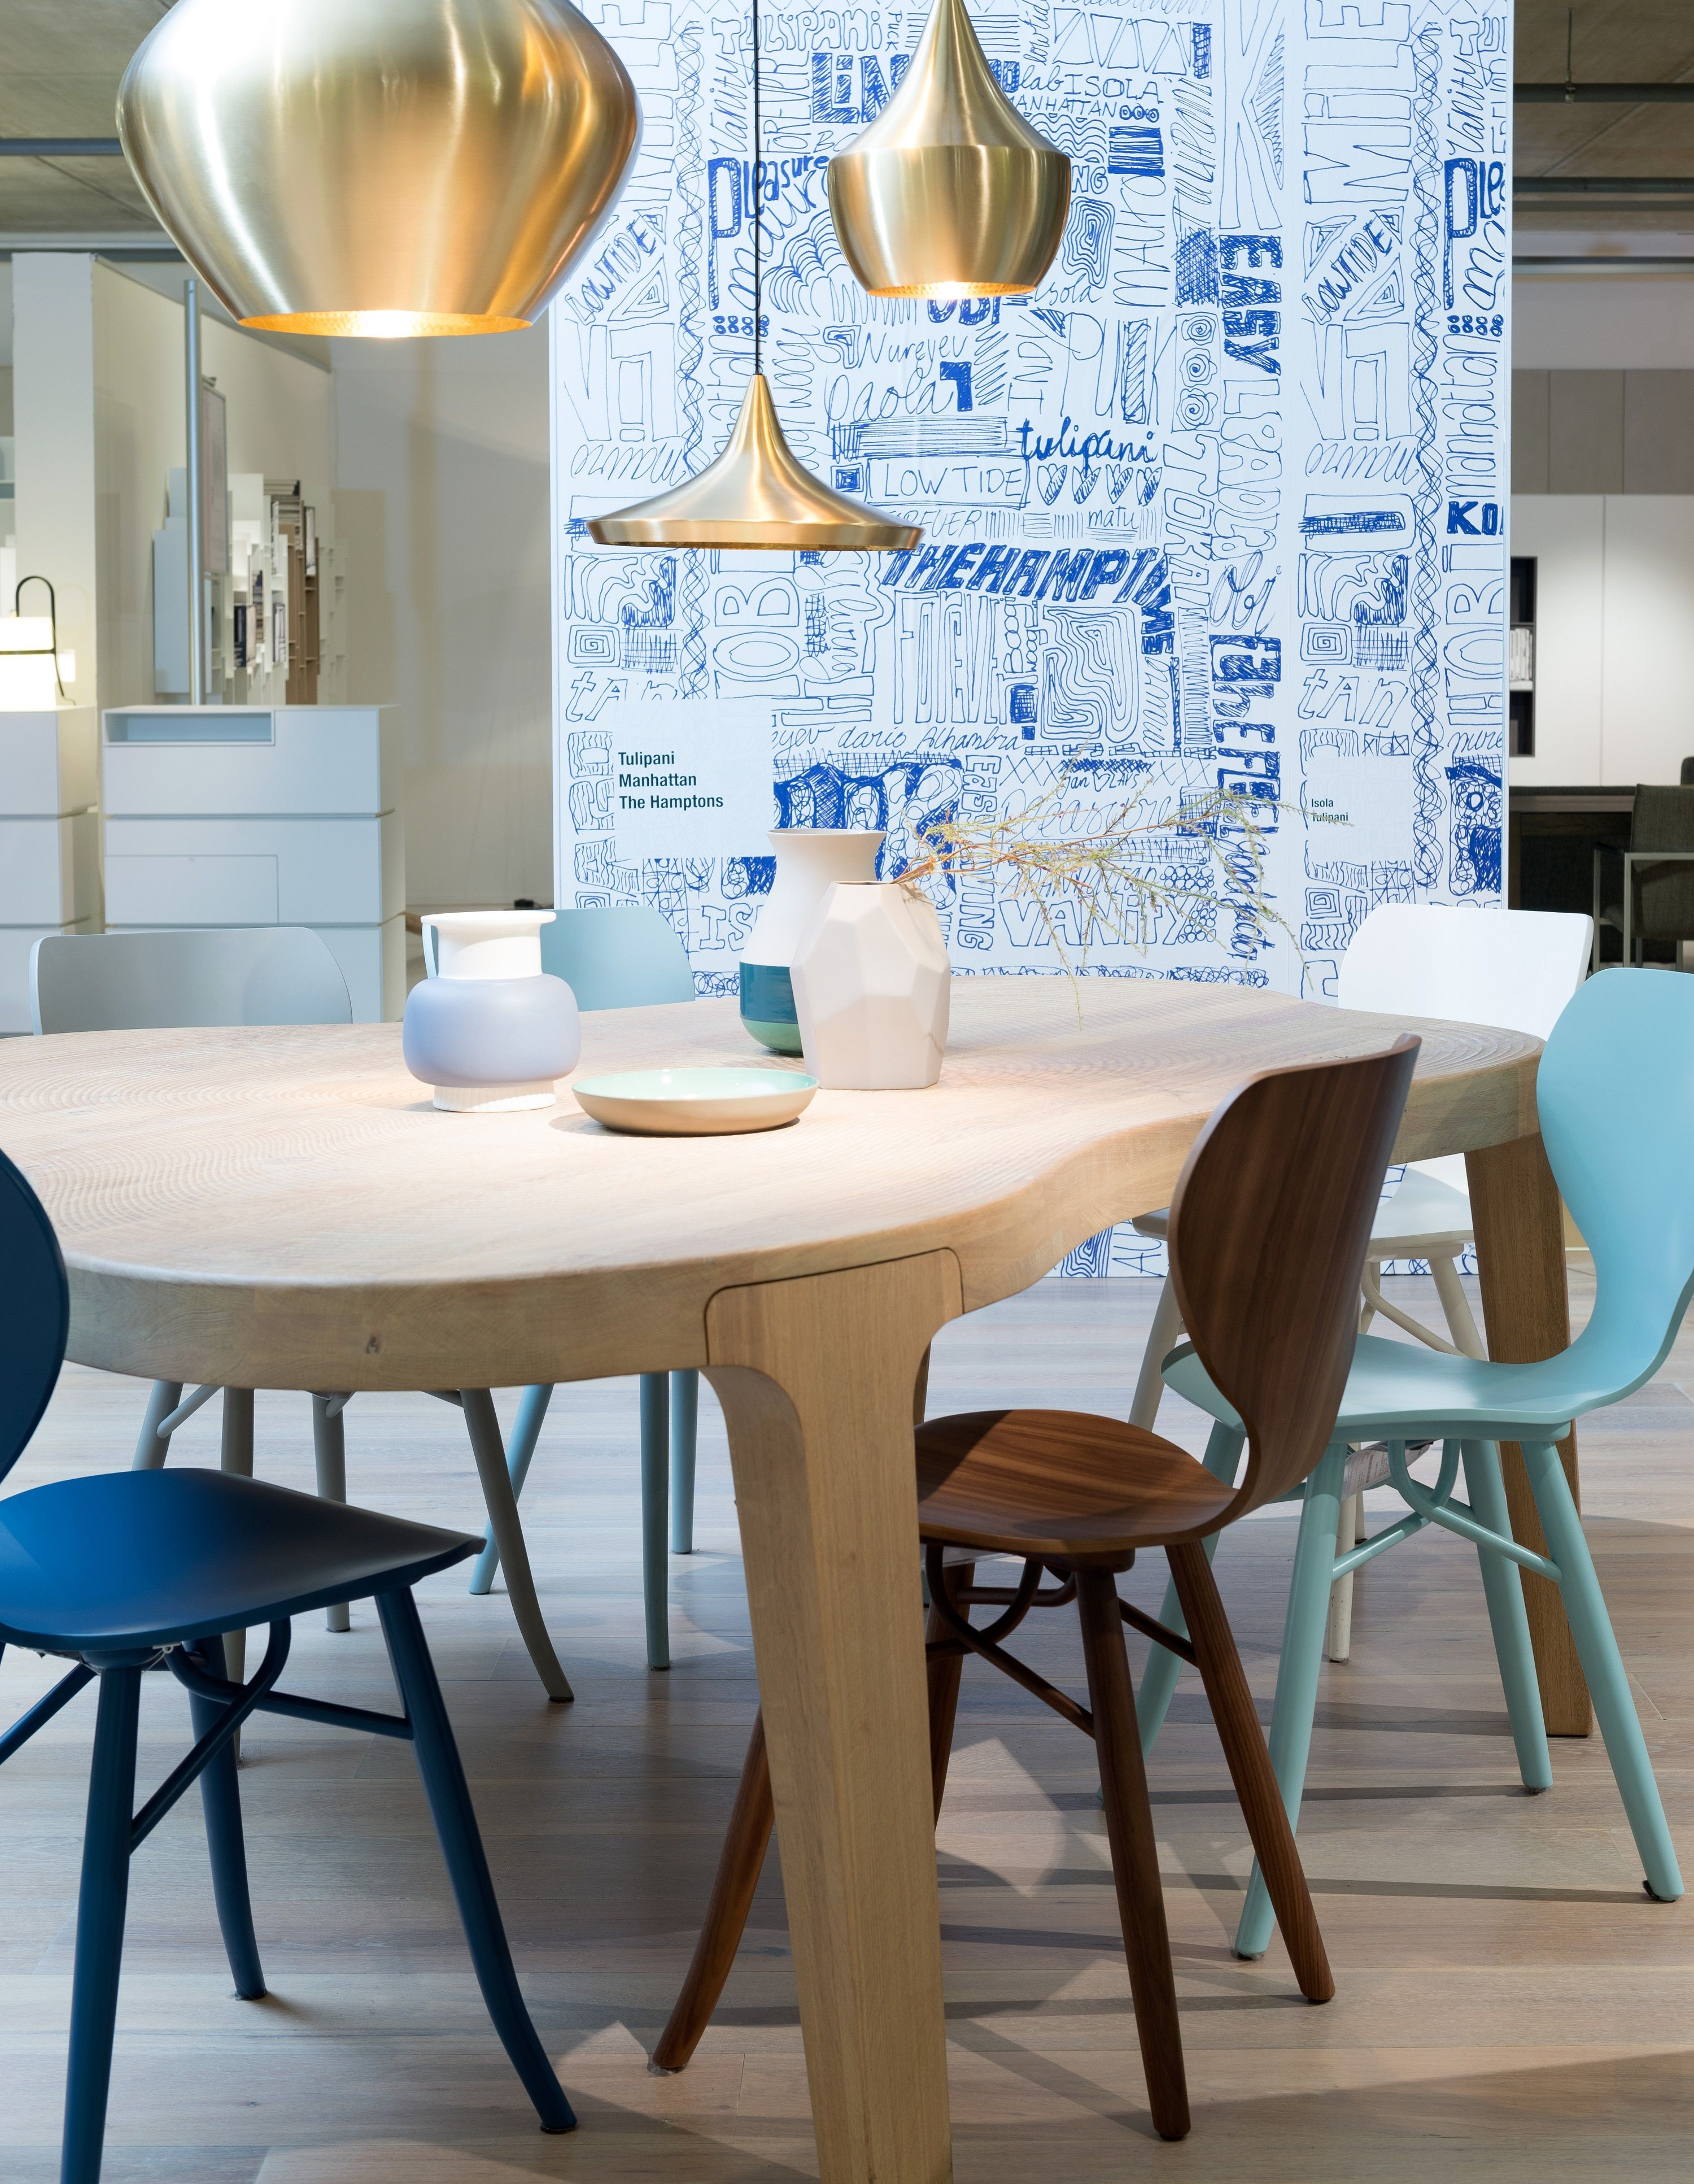 Linteloo Eettafel Stoelen.Inspiration Linteloo Isola Table Tulipani Chairs Tom Dixon